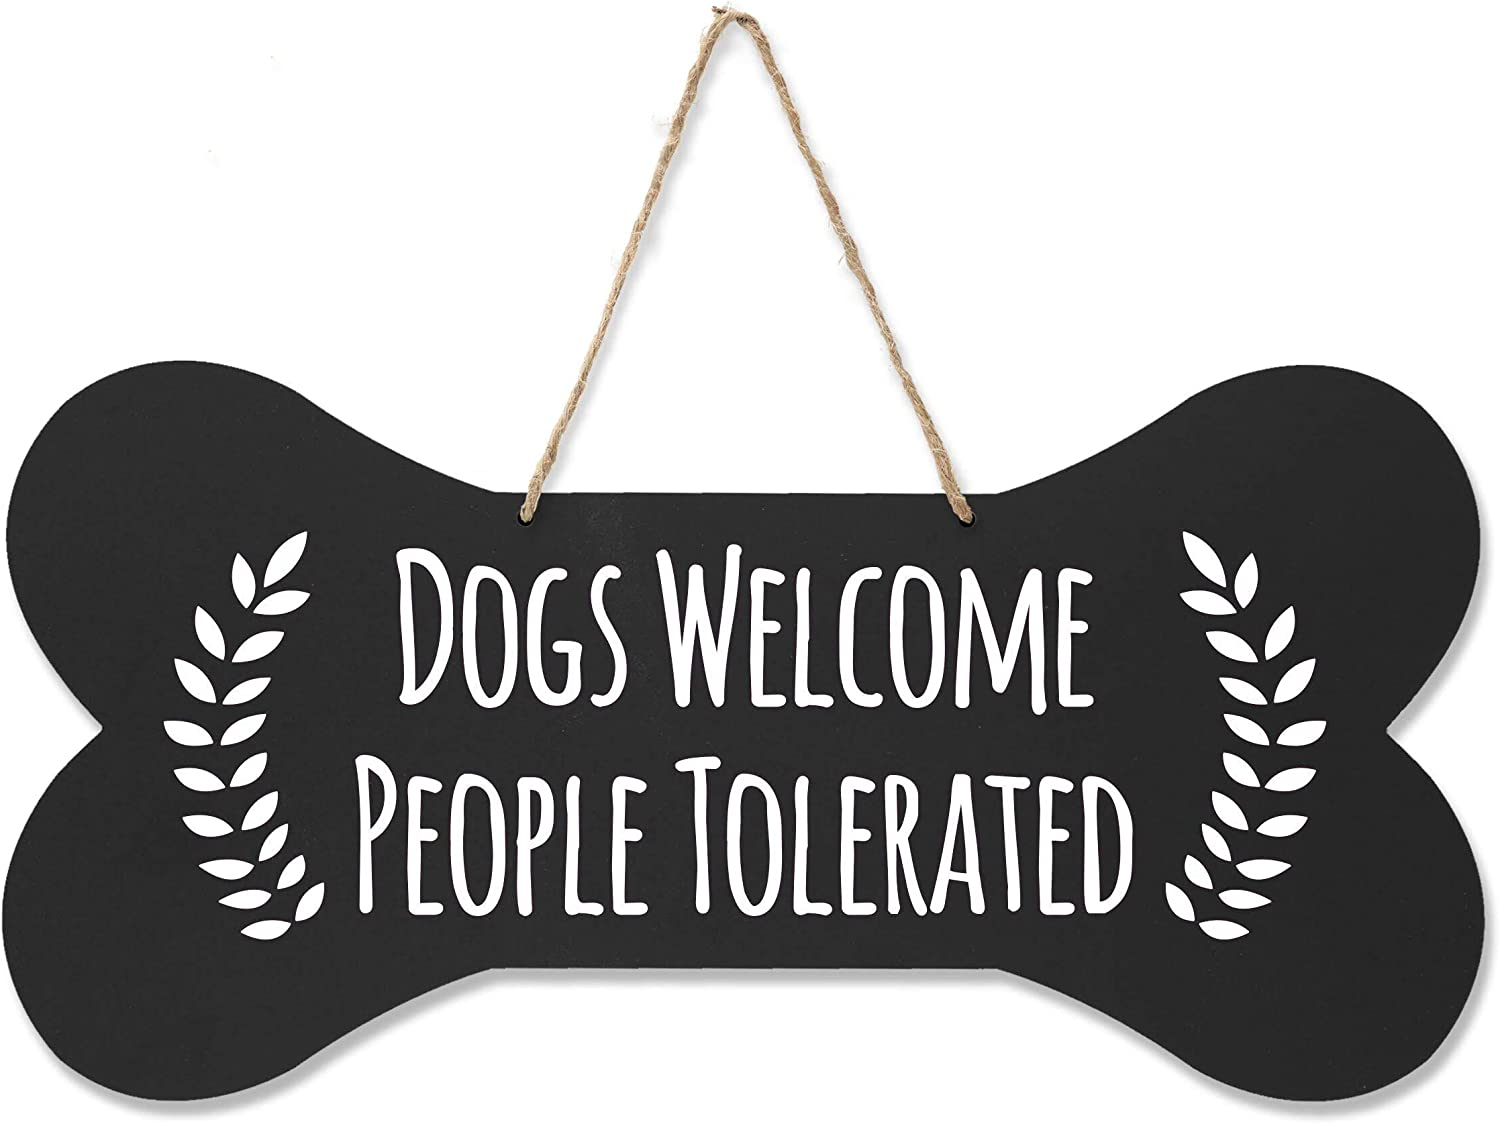 """LifeSong Milestones Pet Quote Dog Bone Wall Hanging Sign, Dog Lovers Gifts for Women, Dog Owner Gift for Home Decor, 8"""" x 16"""" (Black Dogs Welcome)"""